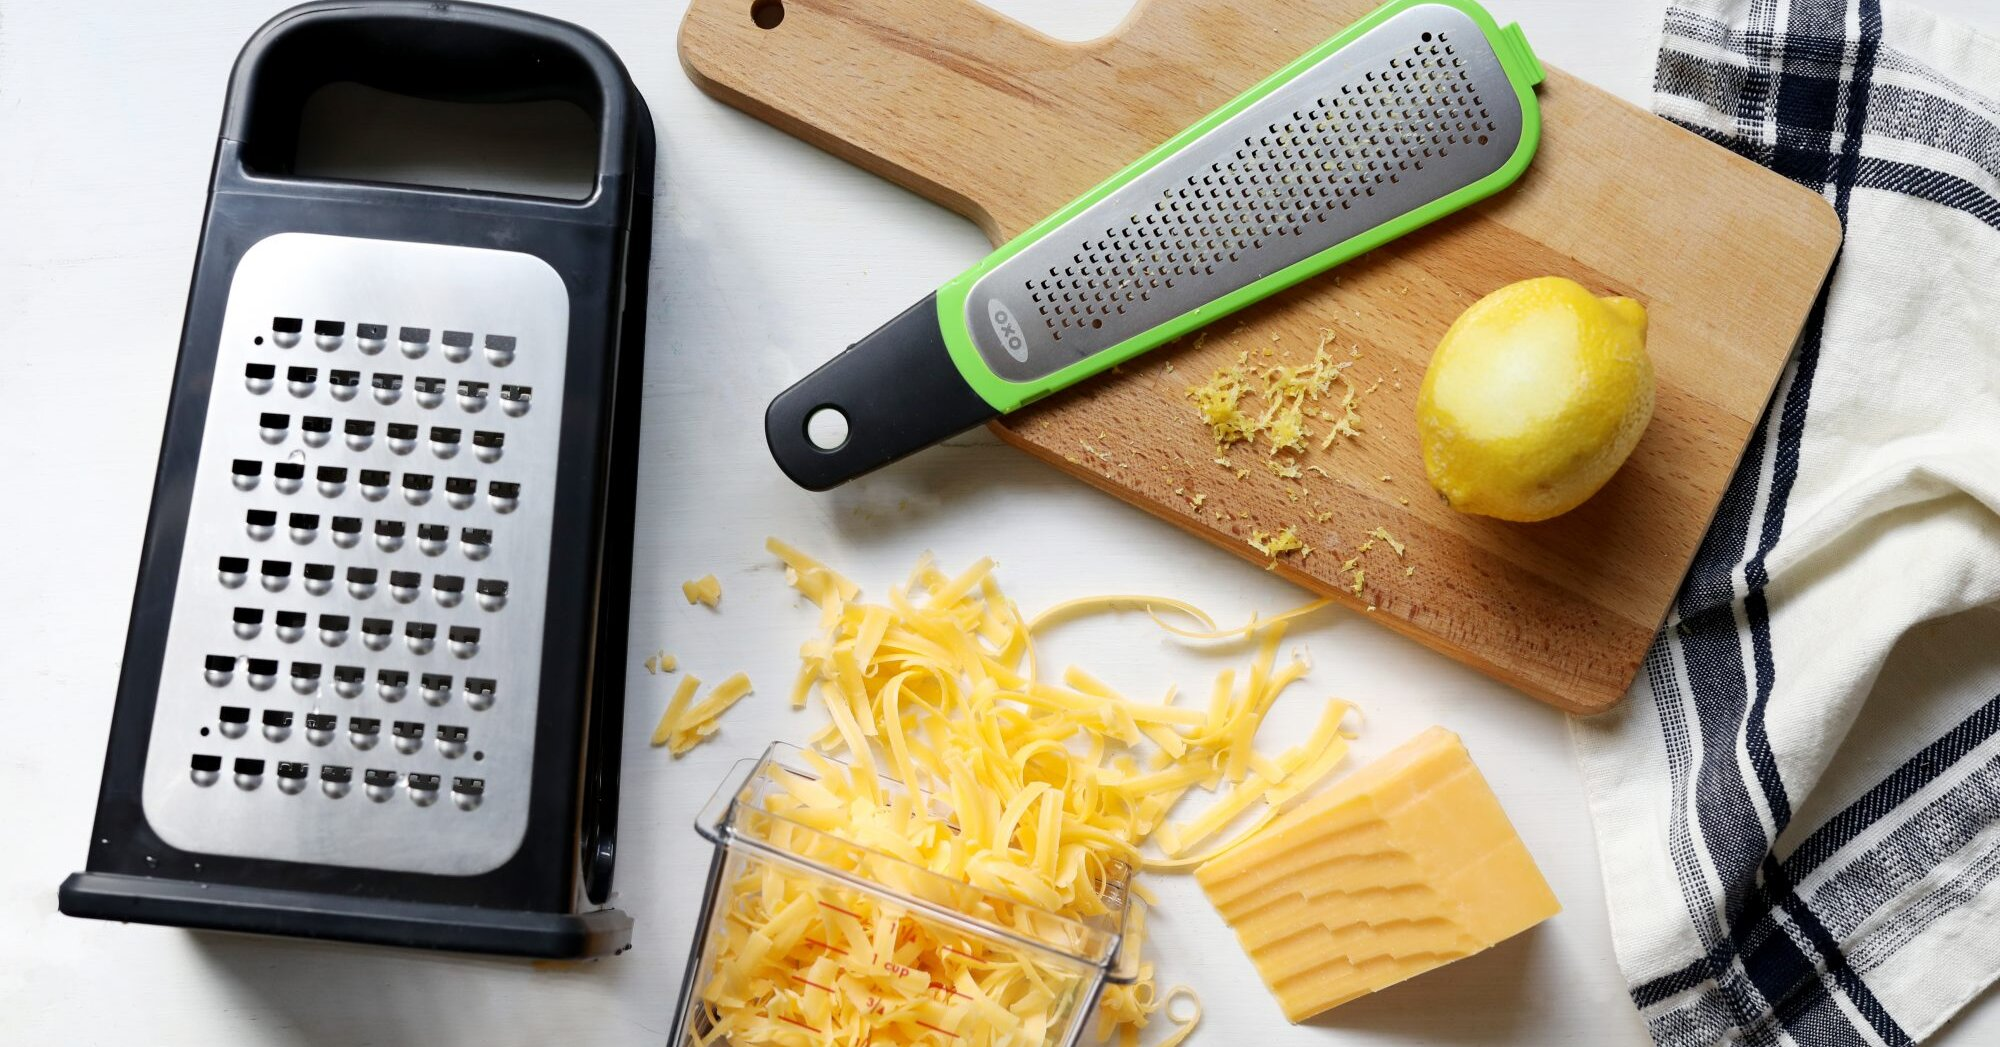 The 10 Best Cheese Graters, Tested by Allrecipes